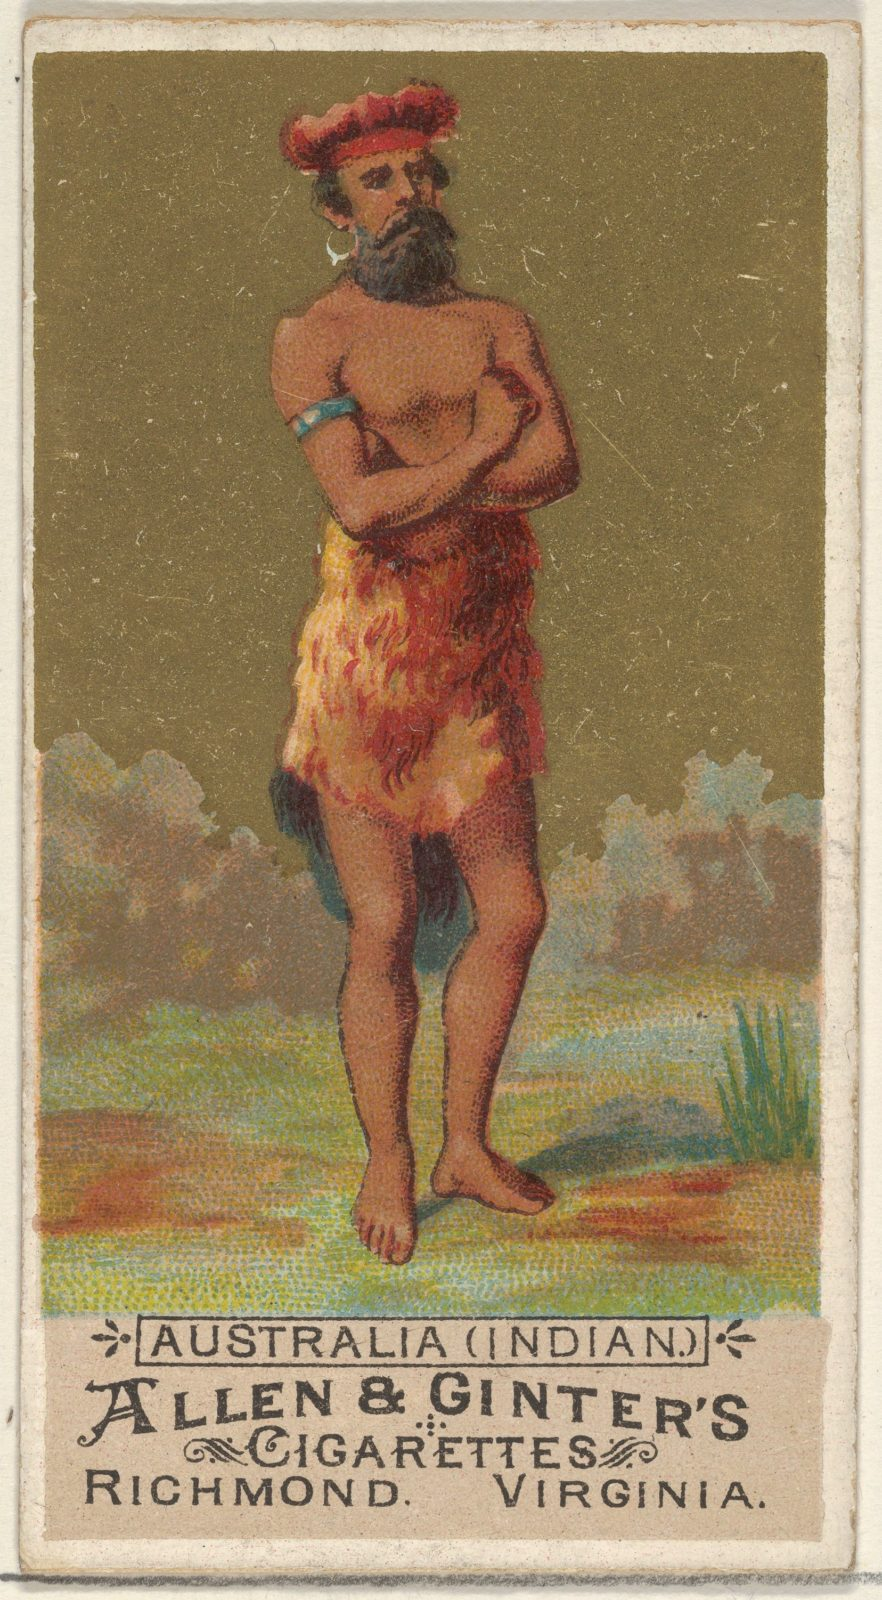 Australia (Indian), from the Natives in Costume series (N16) for Allen & Ginter Cigarettes Brands